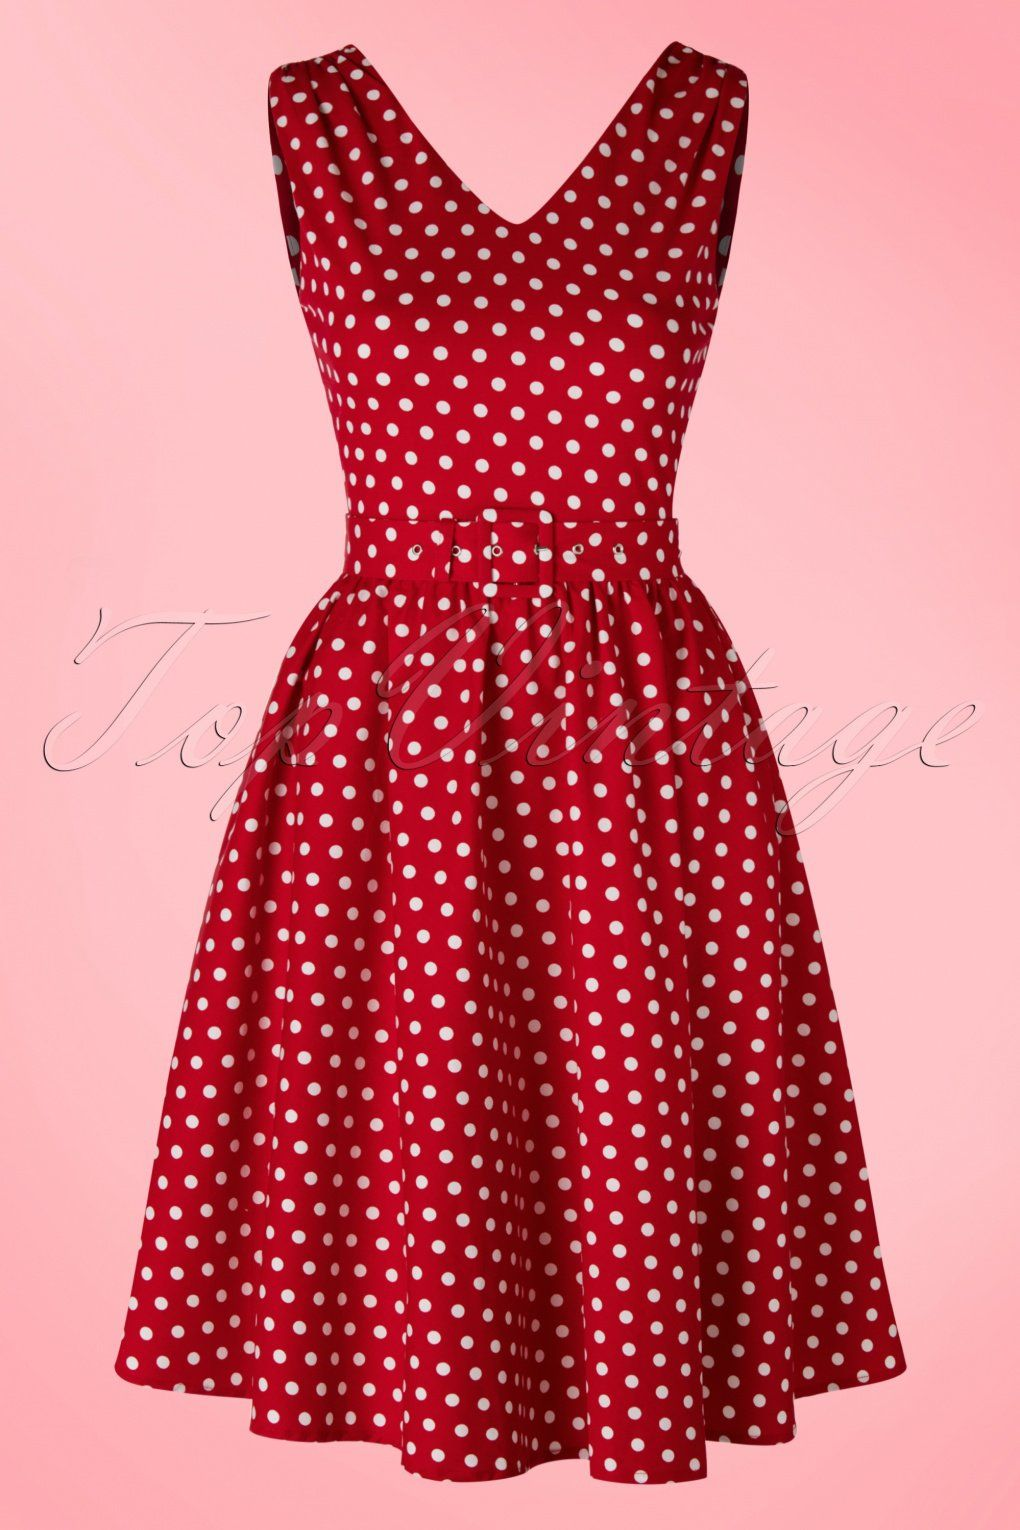 b0615466f2058 This 50s Wendy Polkadot Swing Dress is a must-have for all vintage polkadot  lovers! This classy dress features a beautiful fitted top and runs from the  ...